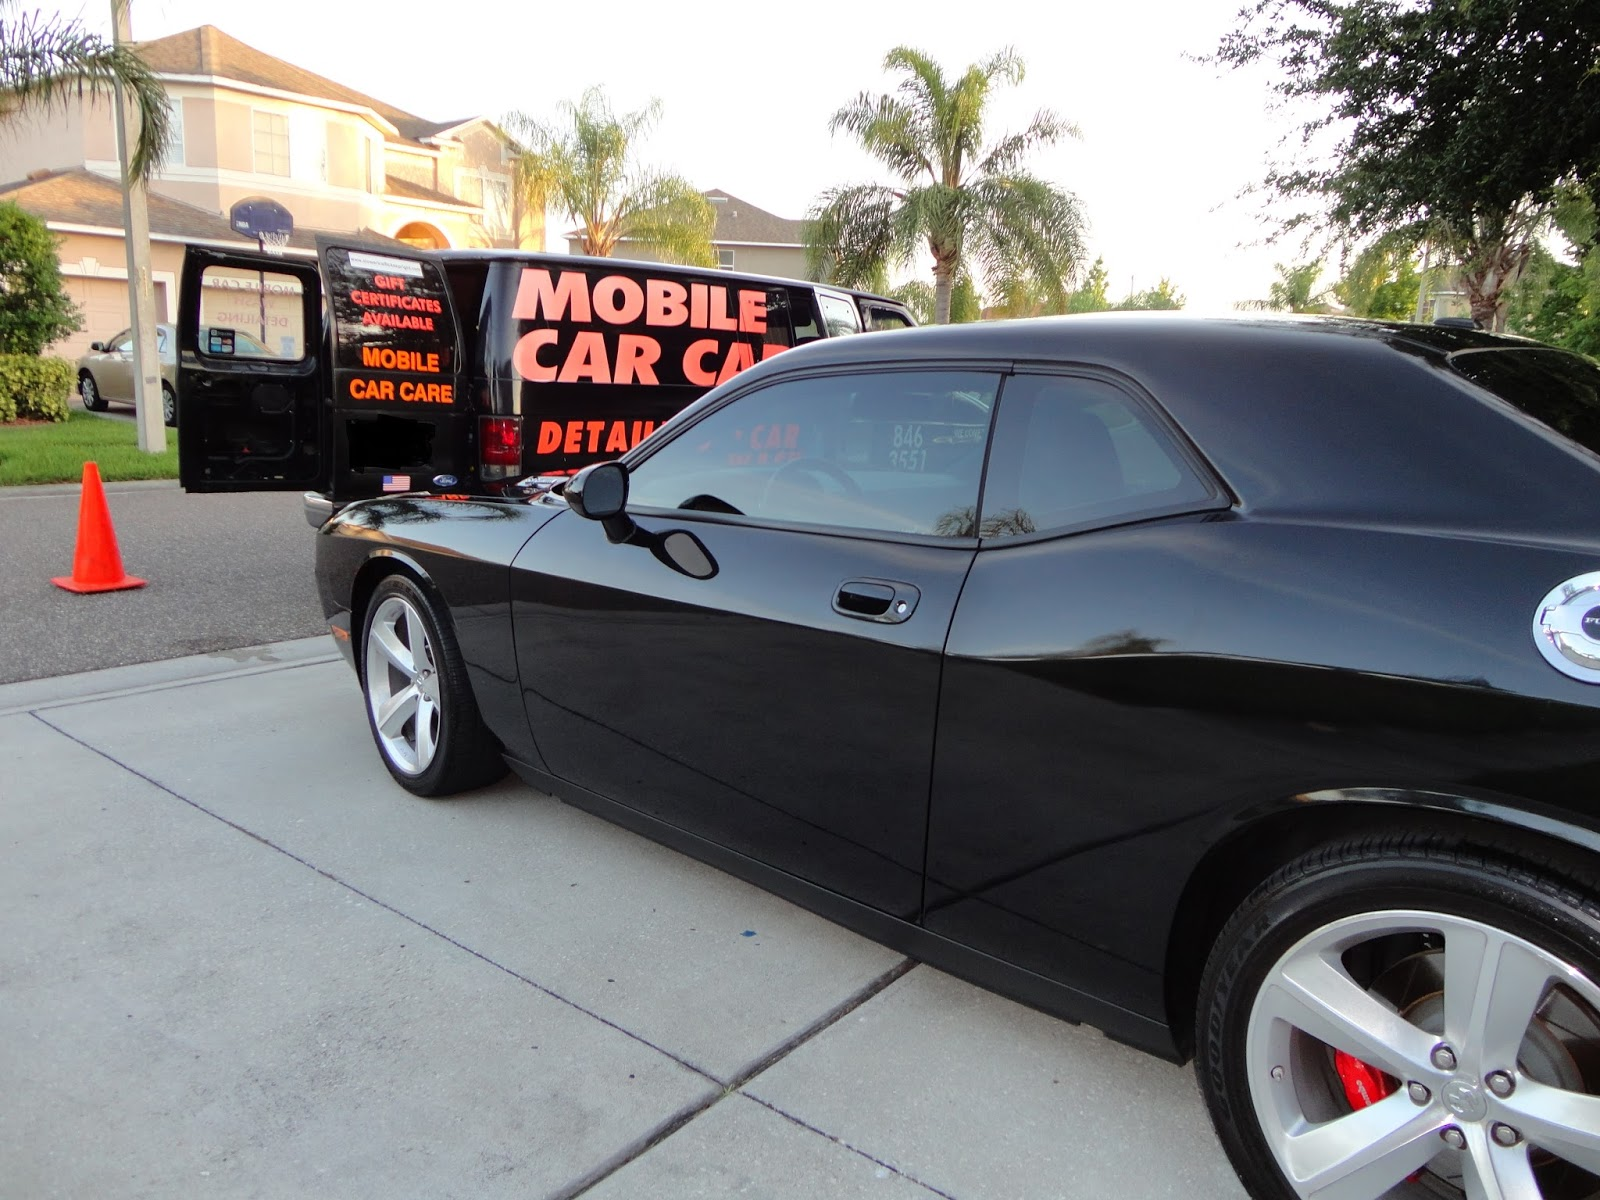 Mobile Car Care Pinellas 727-260-7684